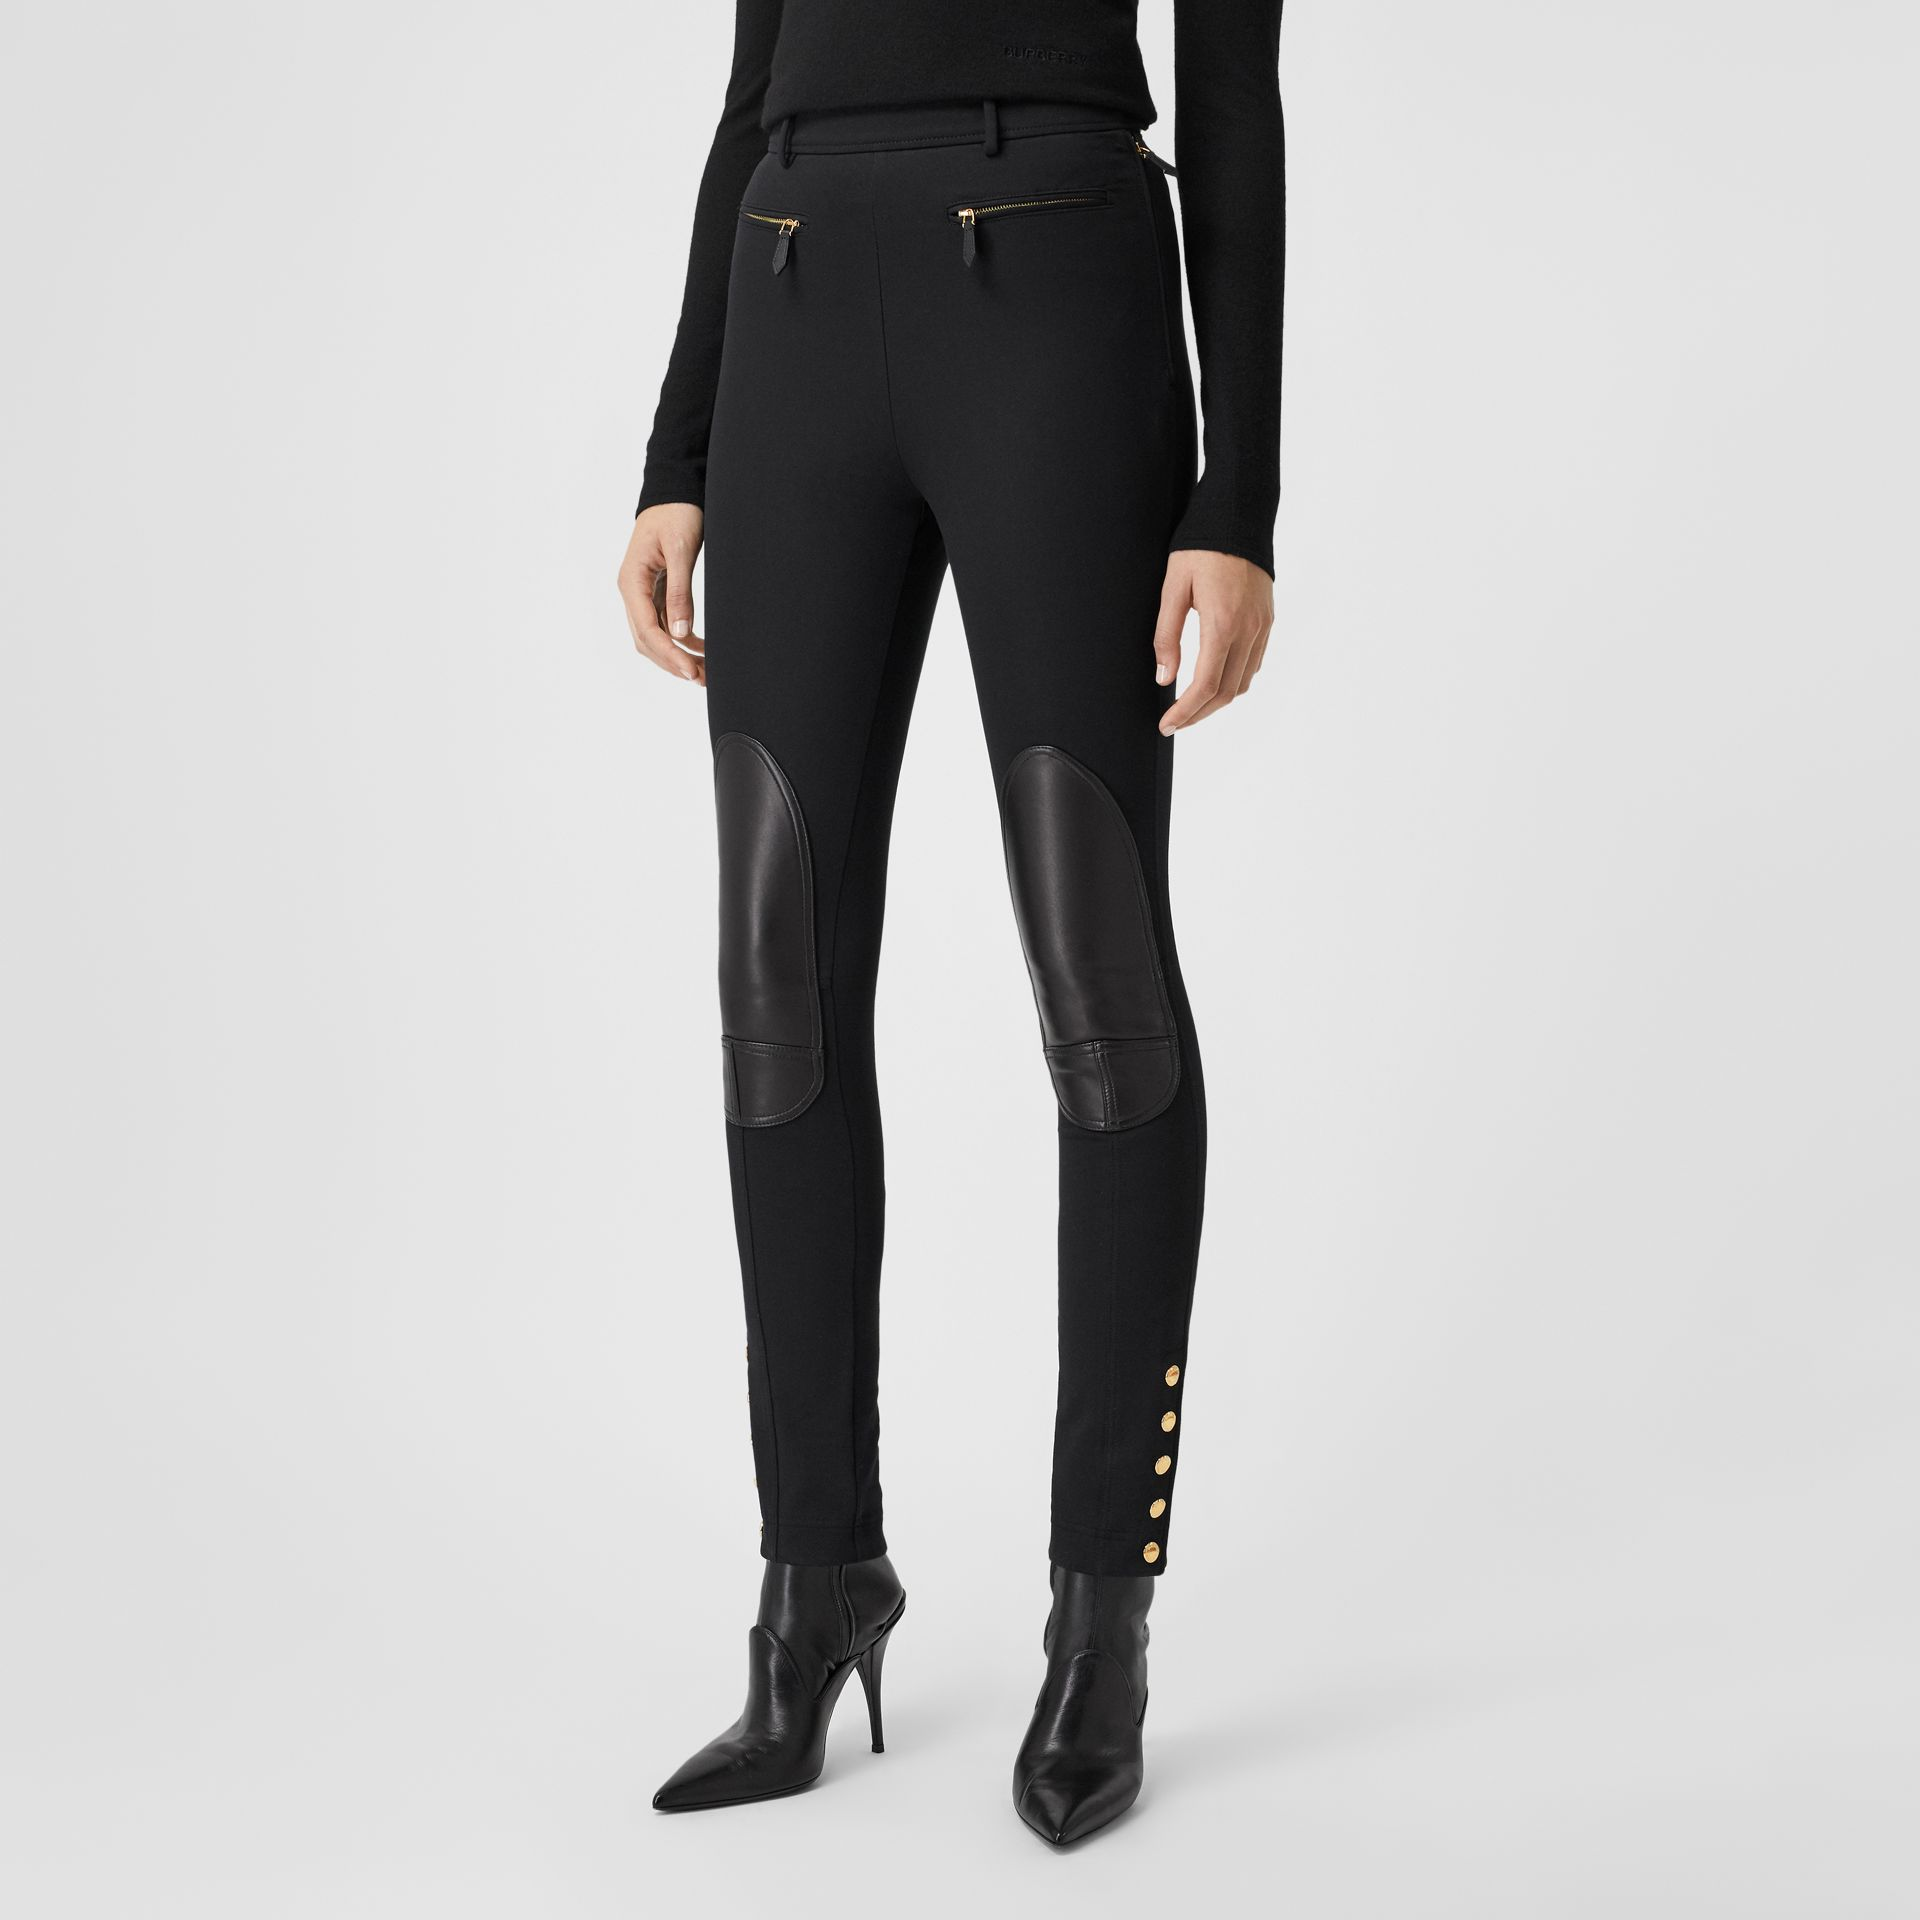 Lambskin Trim Stretch Cotton Blend Trousers in Black - Women | Burberry - gallery image 5